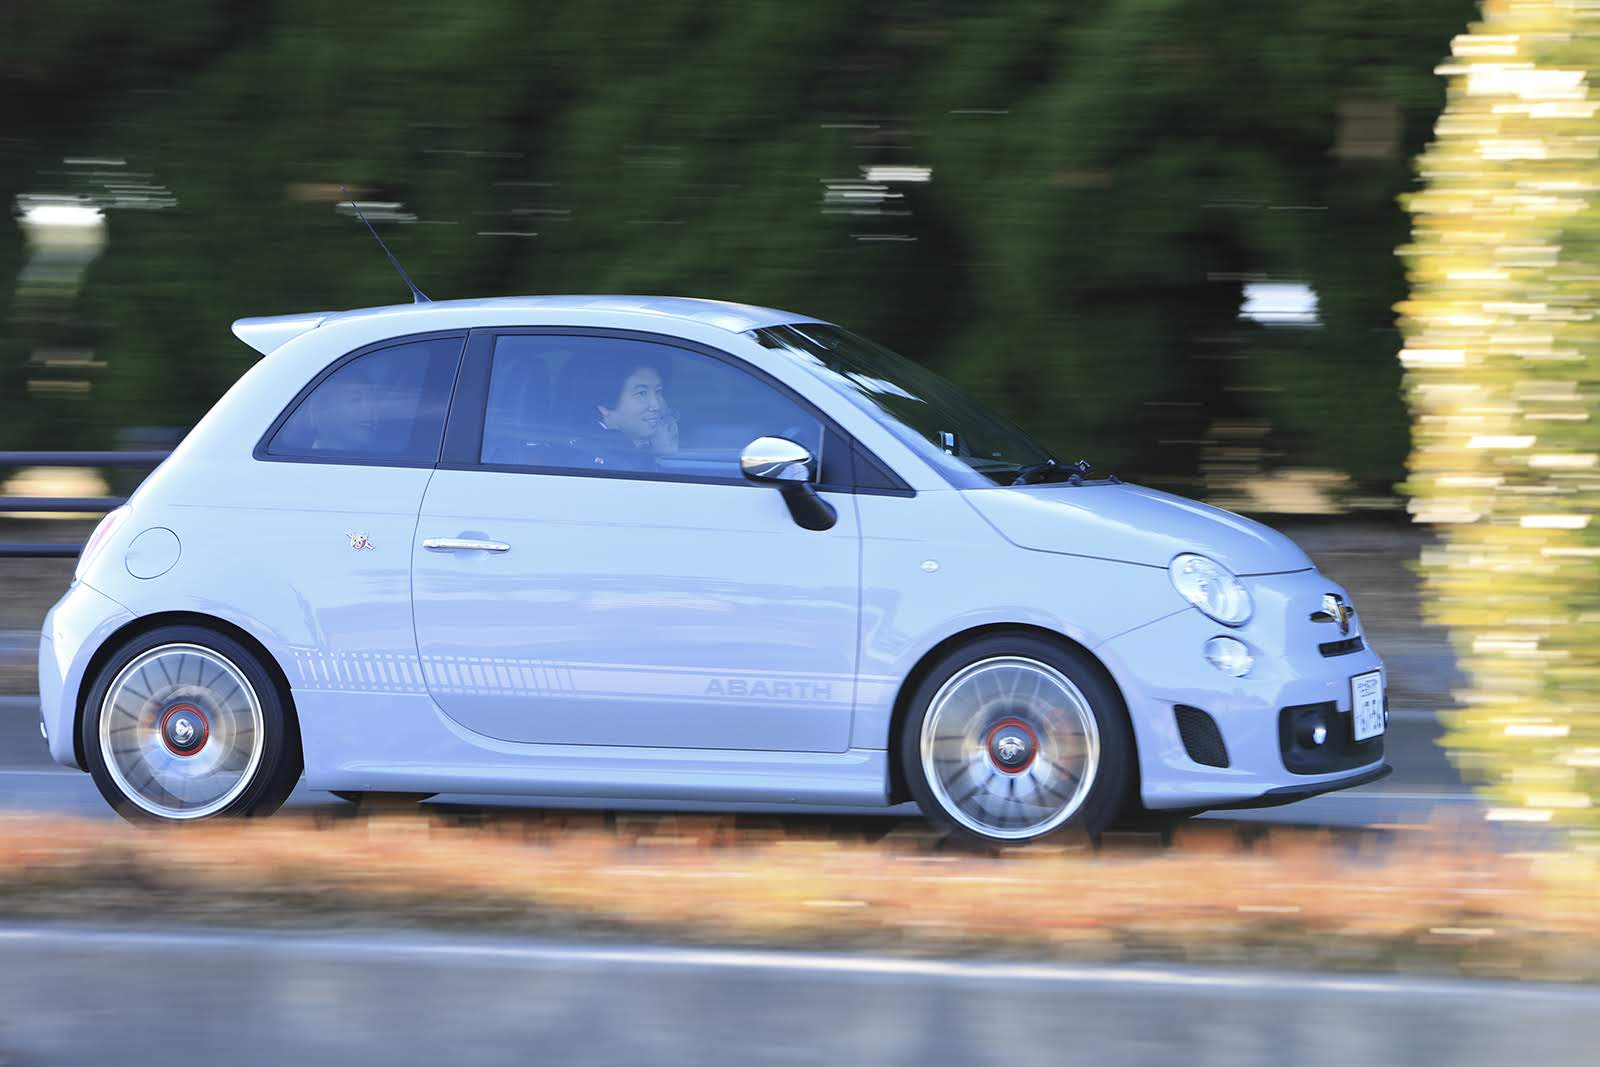 190426_Abarth_Owners_06m